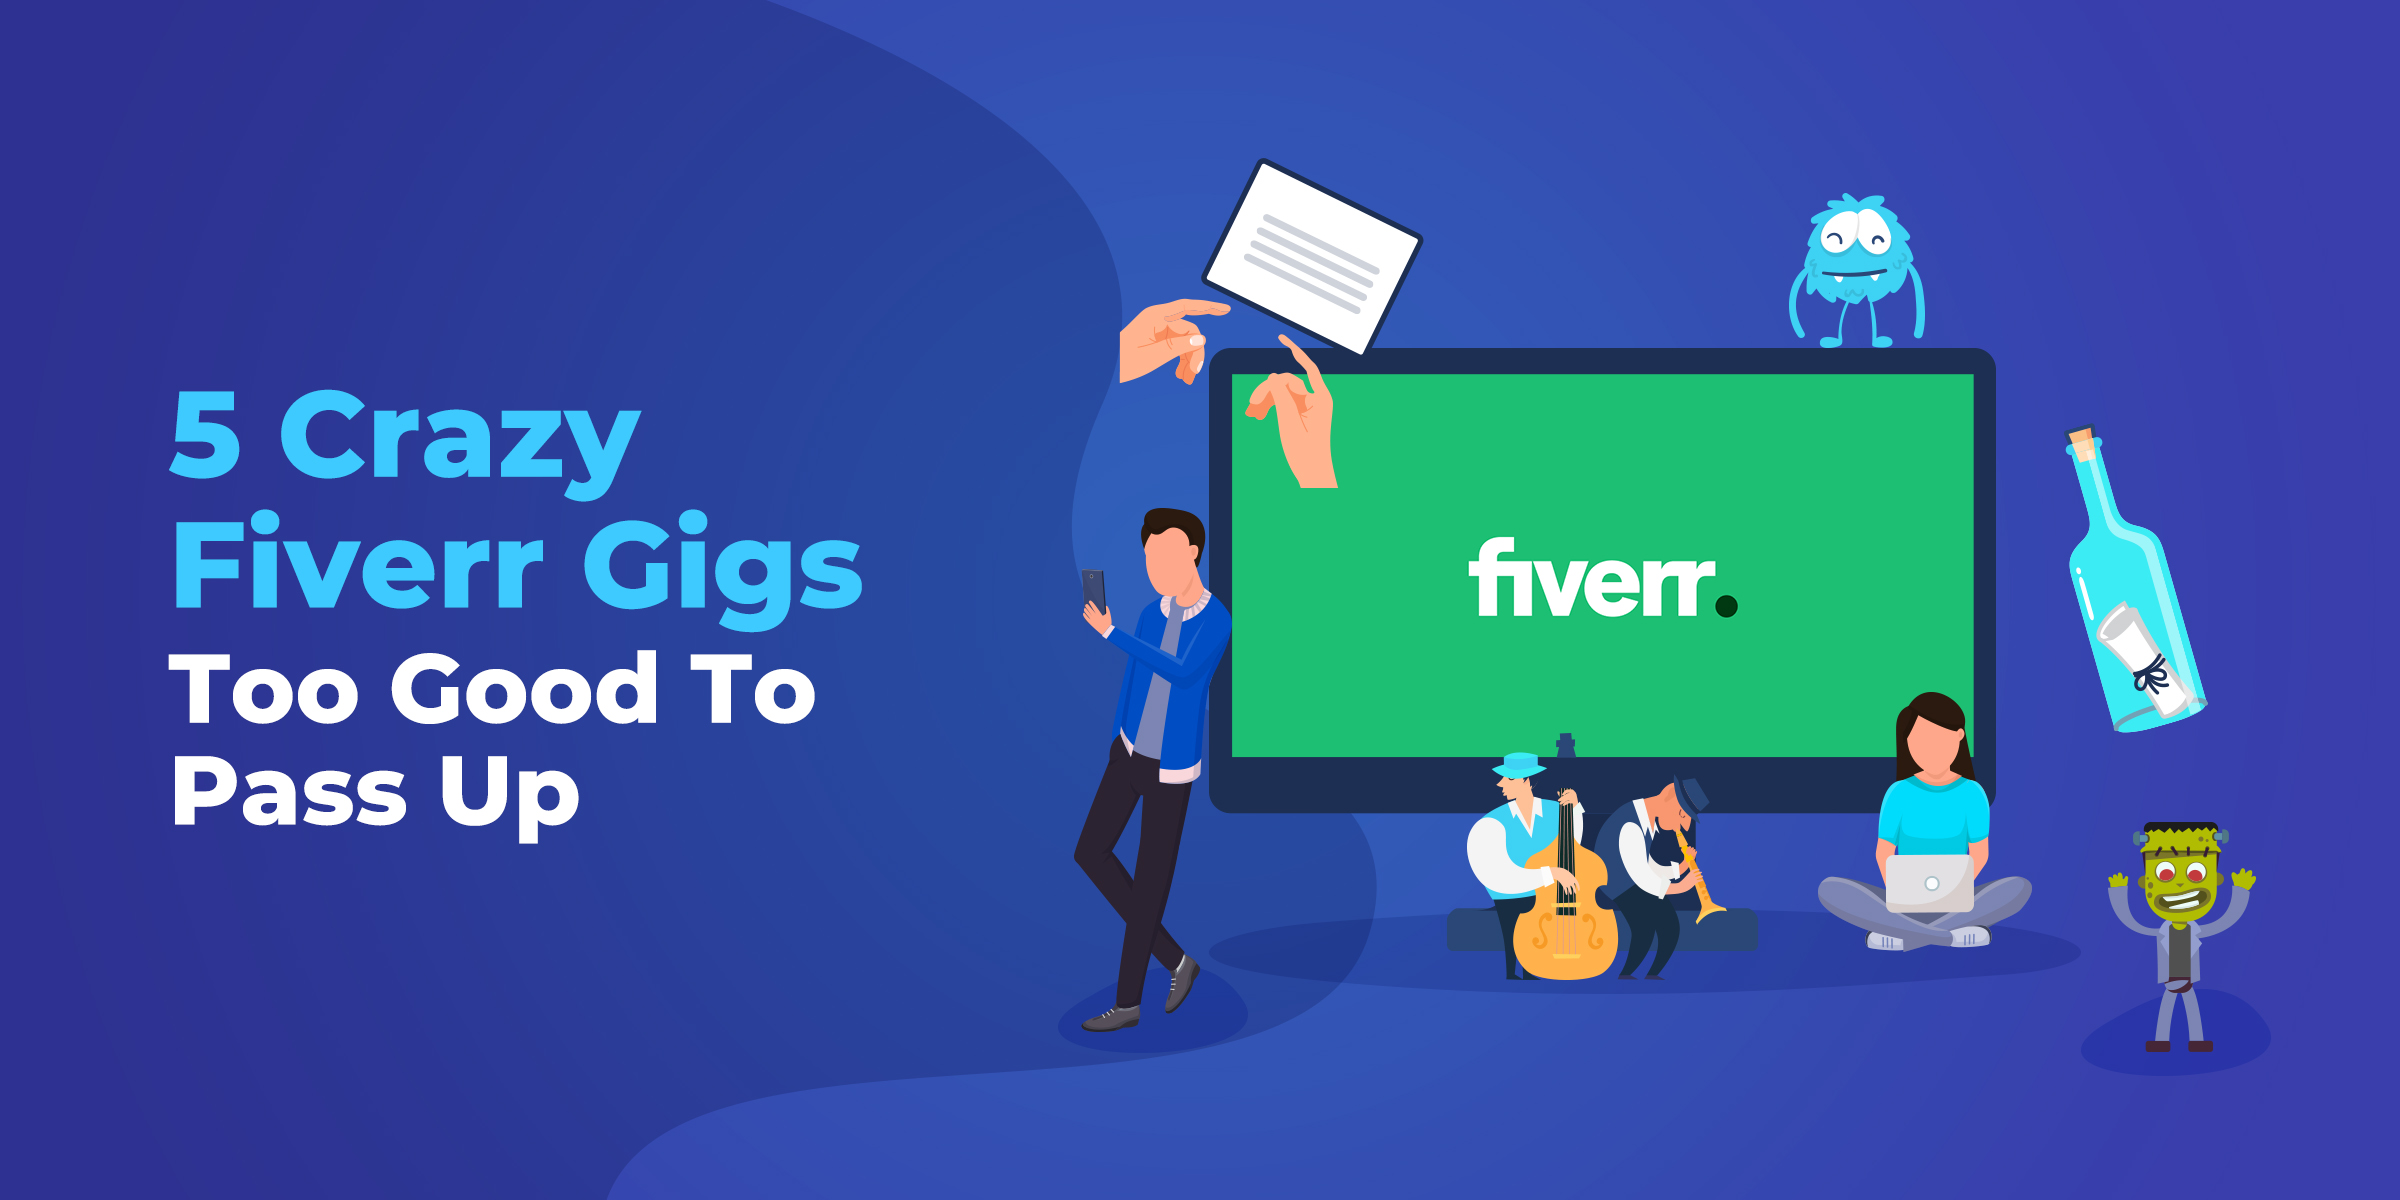 5 Crazy Fiverr Gigs Too Good To Pass Up